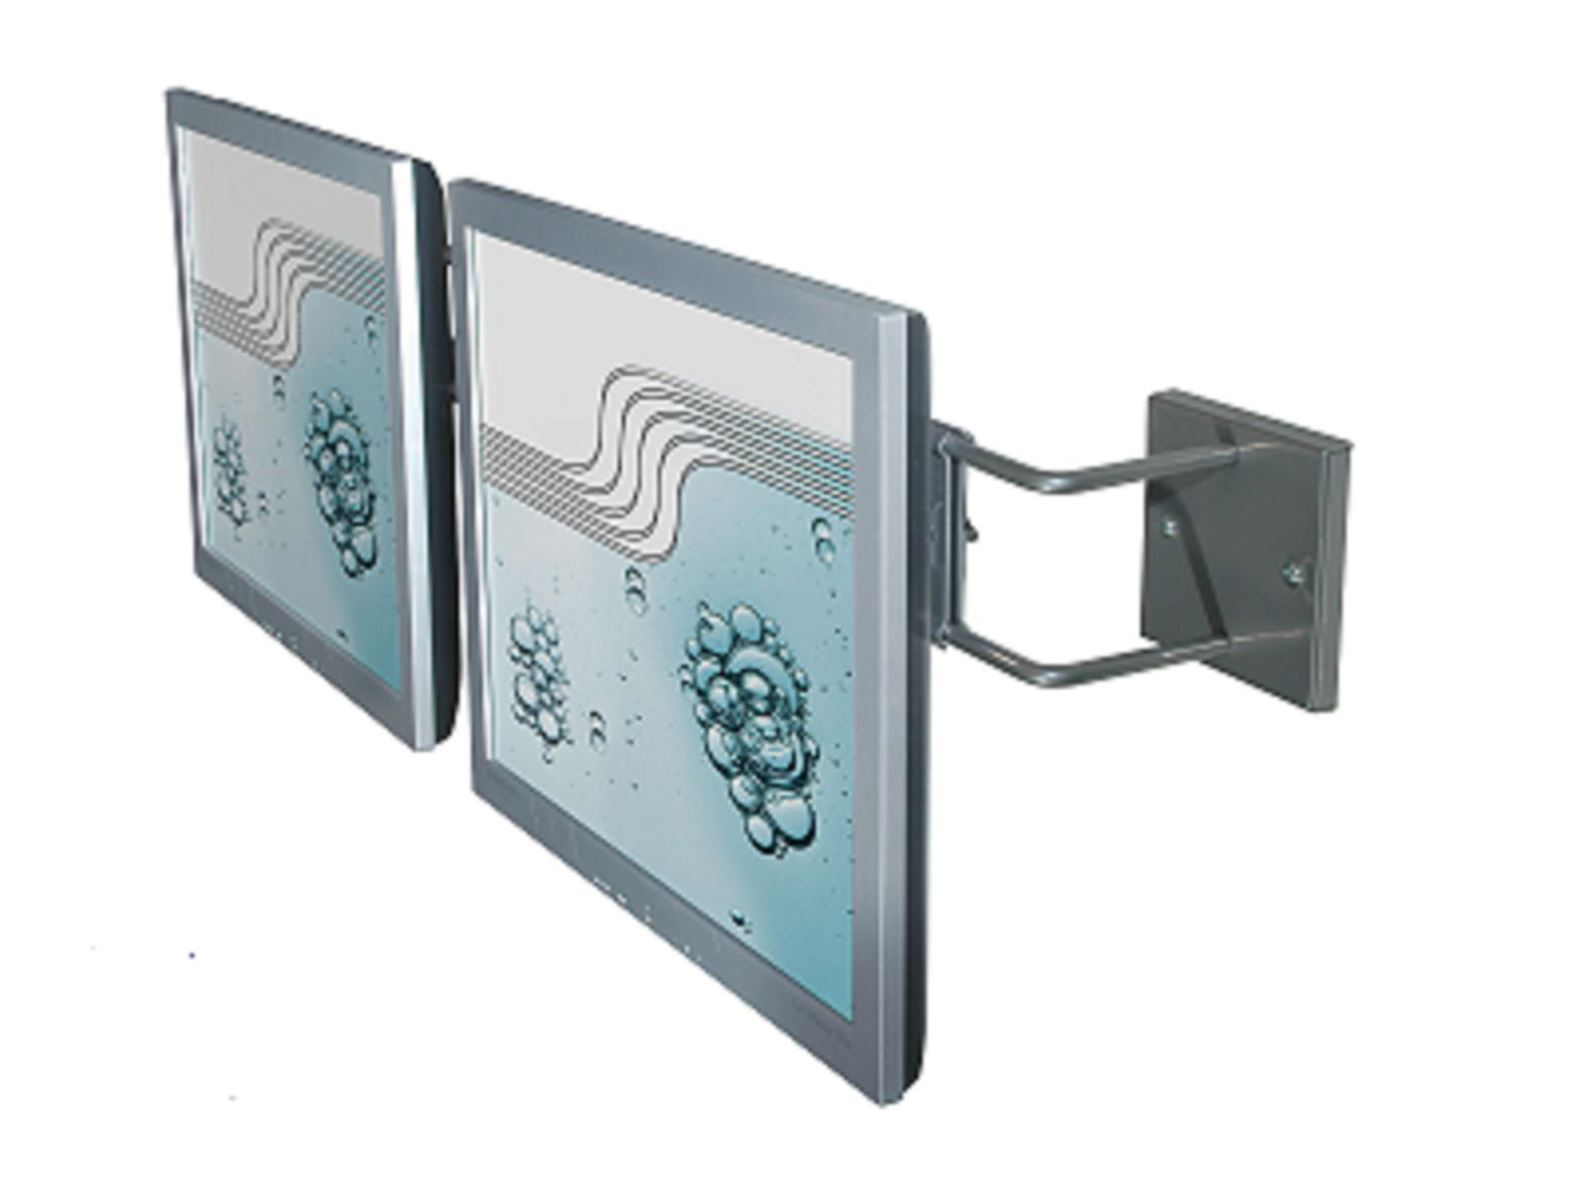 R-Go Double Screen Wall Bracket, adjustable, silver - 4